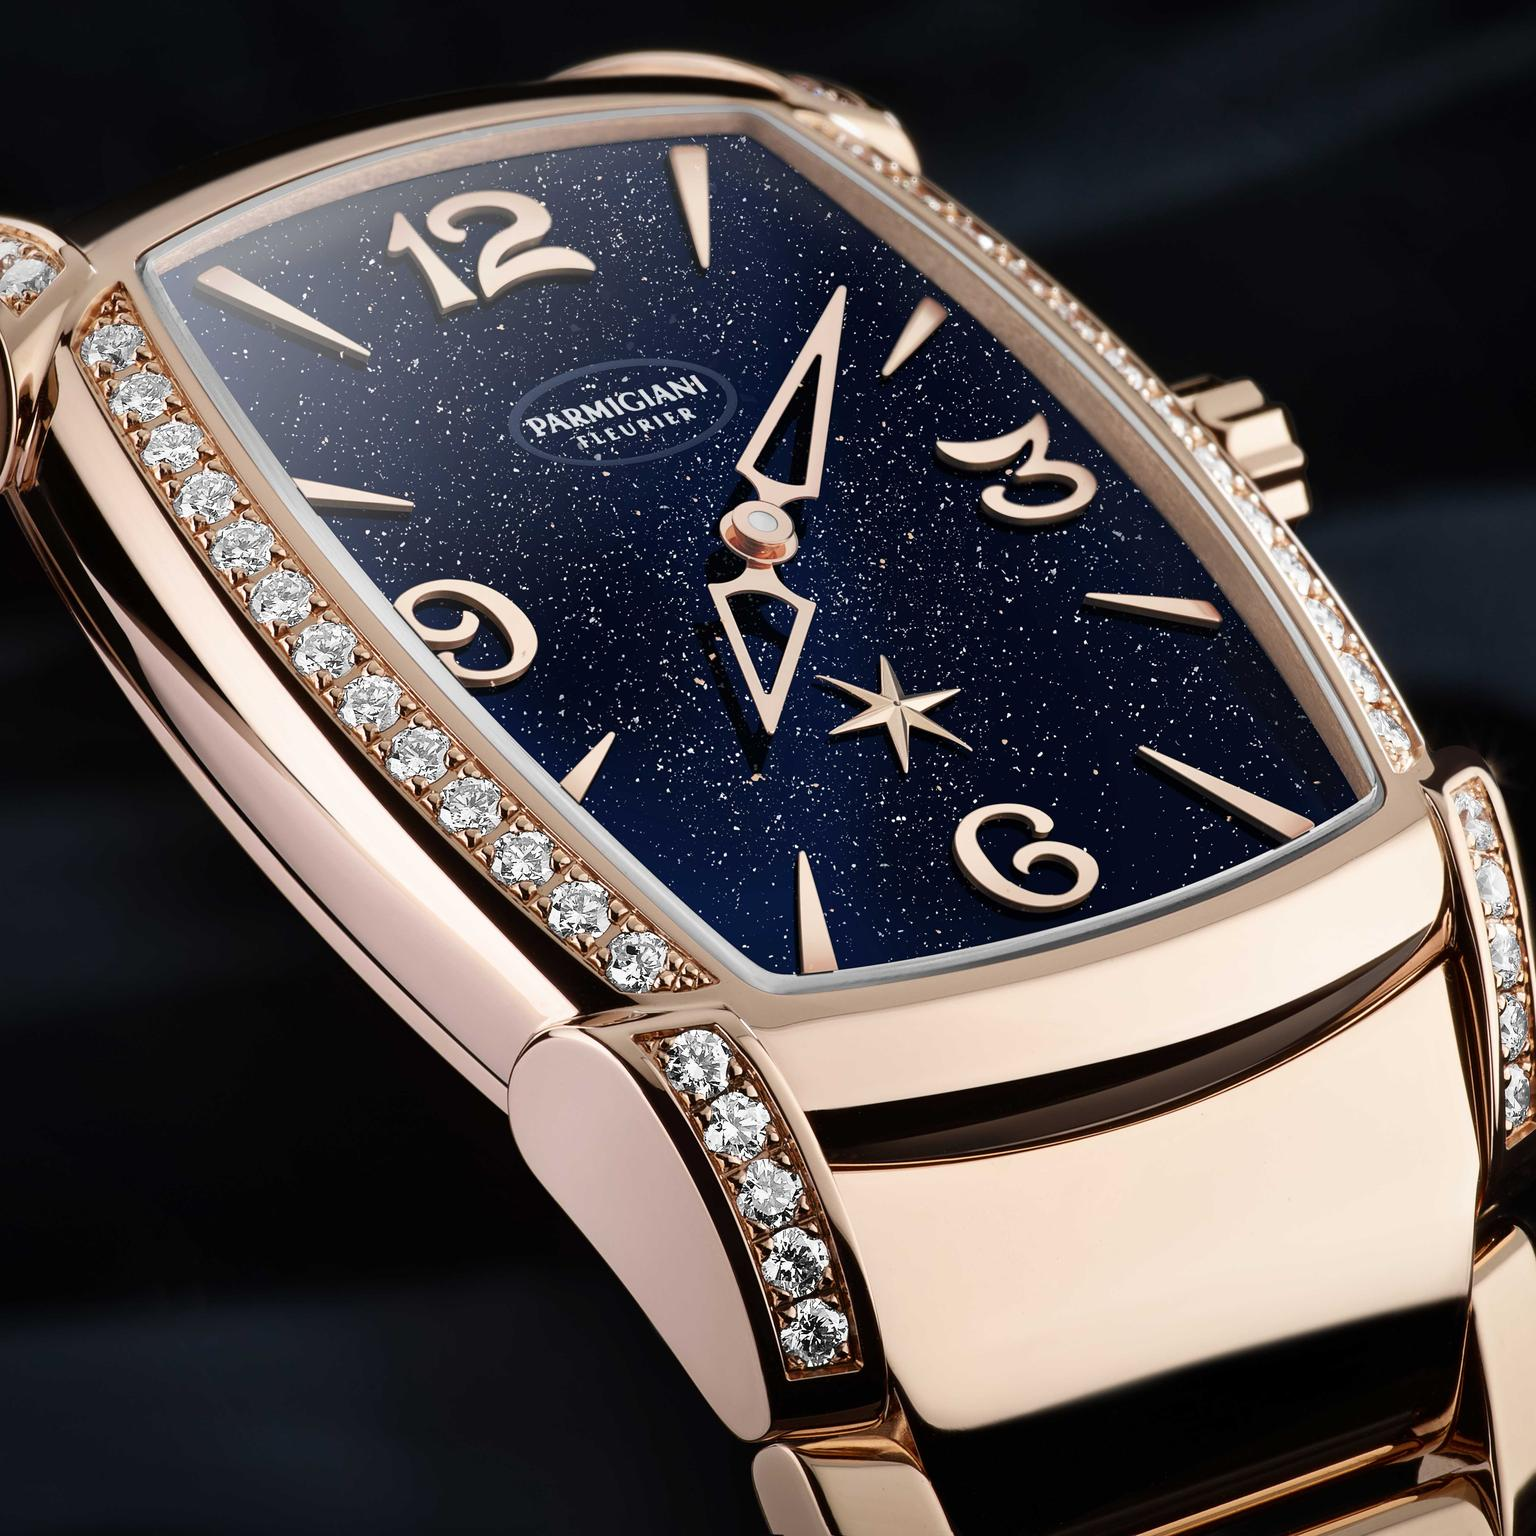 Parmigiani Fleurier's new rose gold Kalpa Nova Galaxy for ladies with an aventurine glass dial